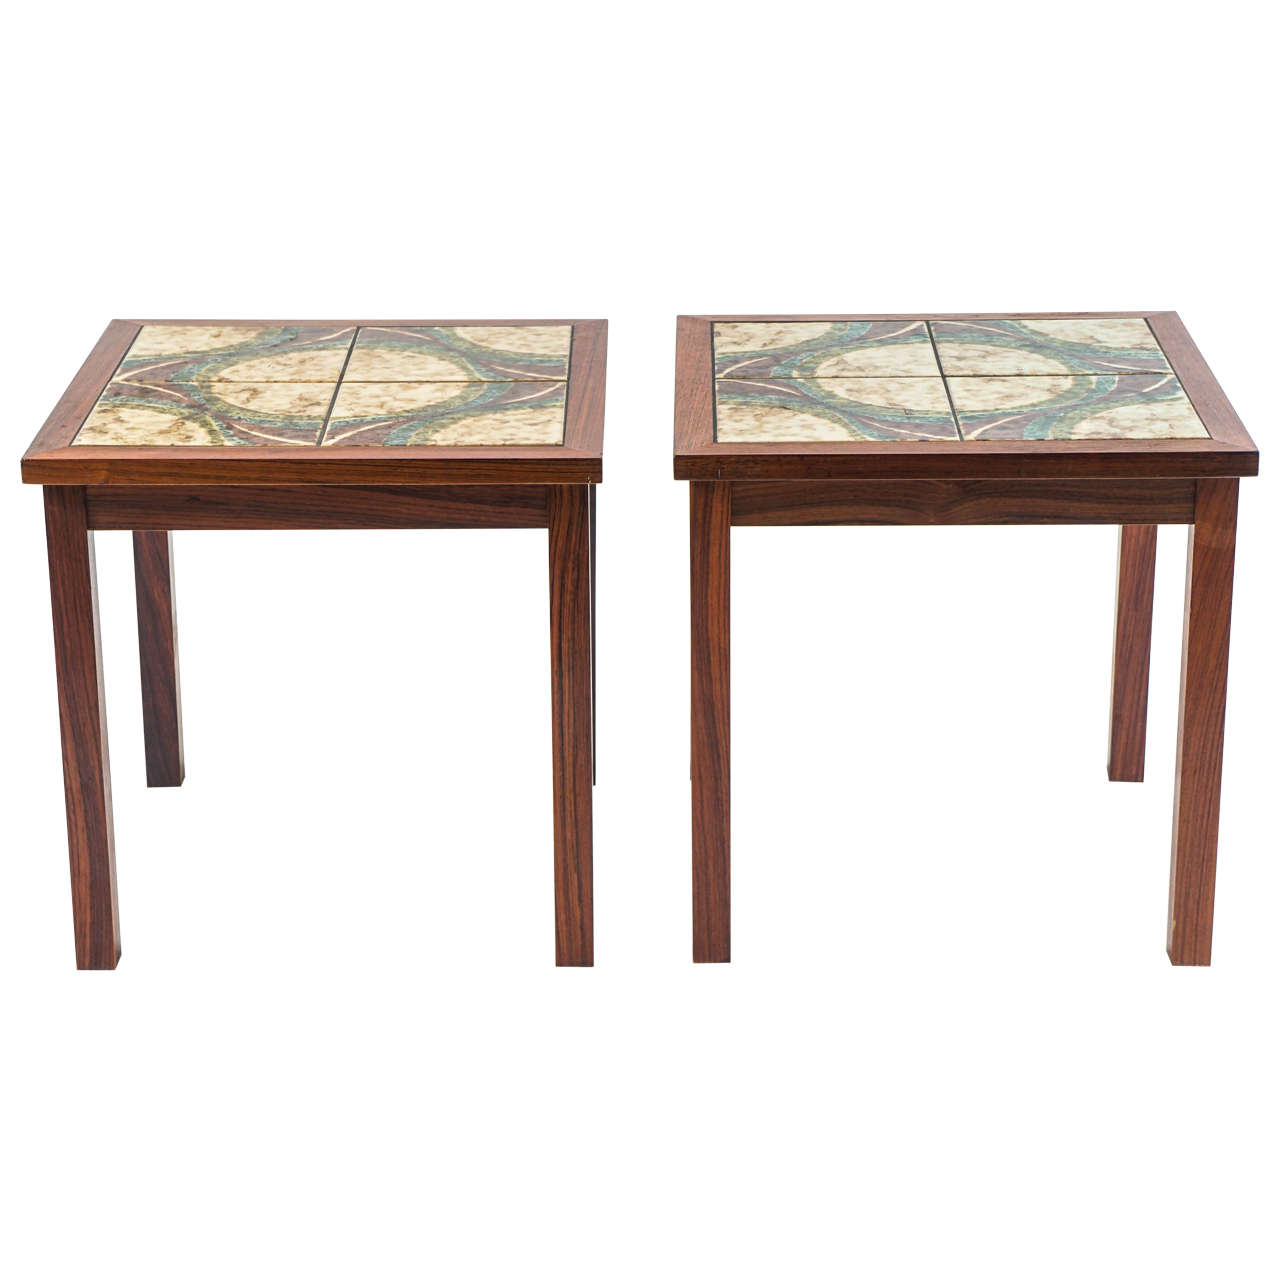 Pair of Rosewood and Tile-Top Cocktail or End Tables